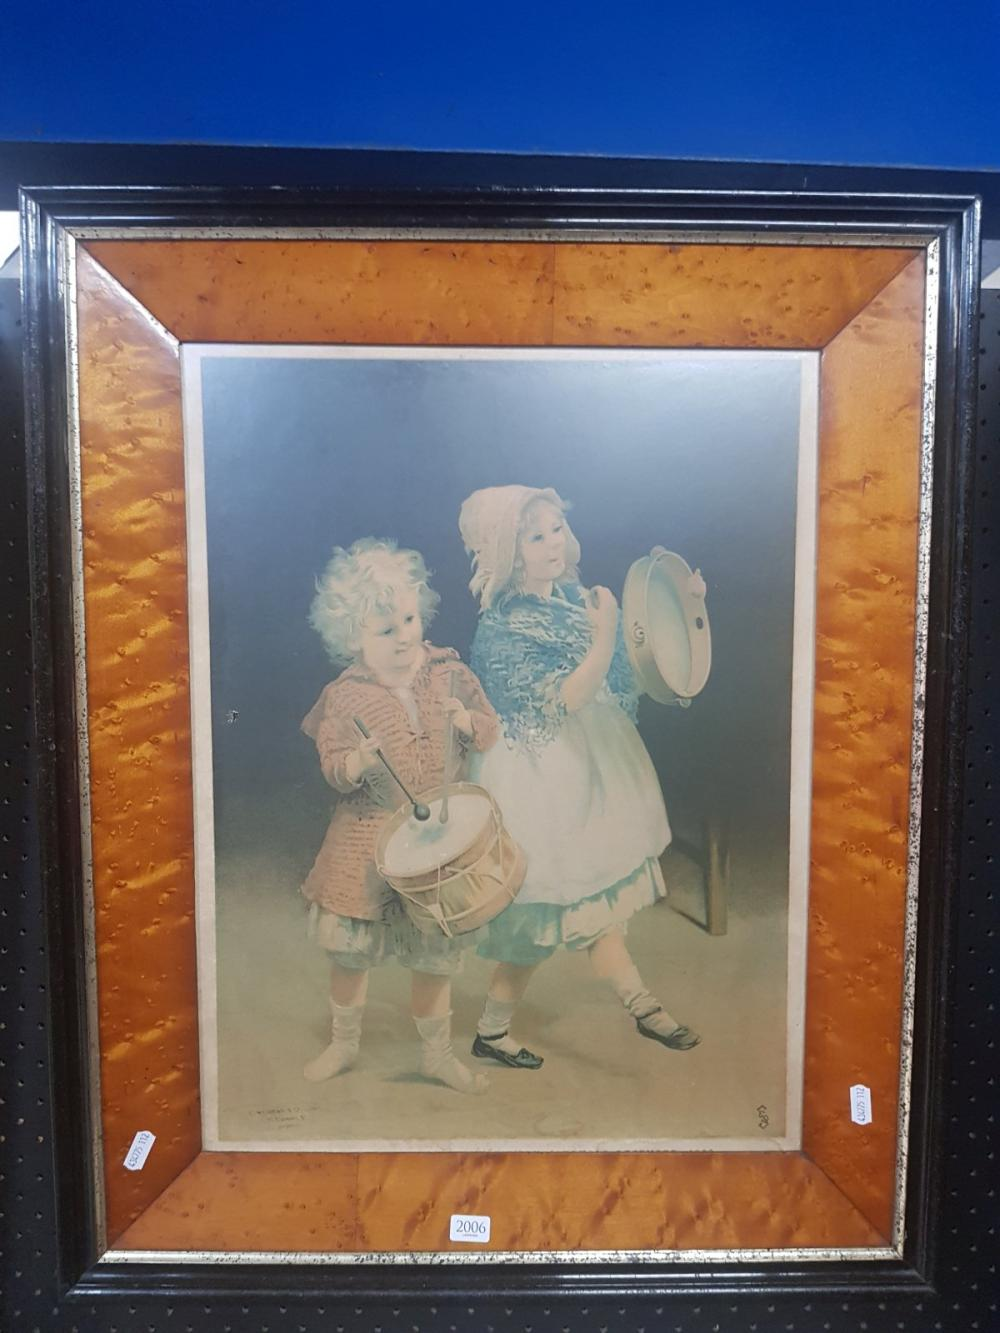 C18th Chromolithograph in antique frame, frame size: 68 x 66cm